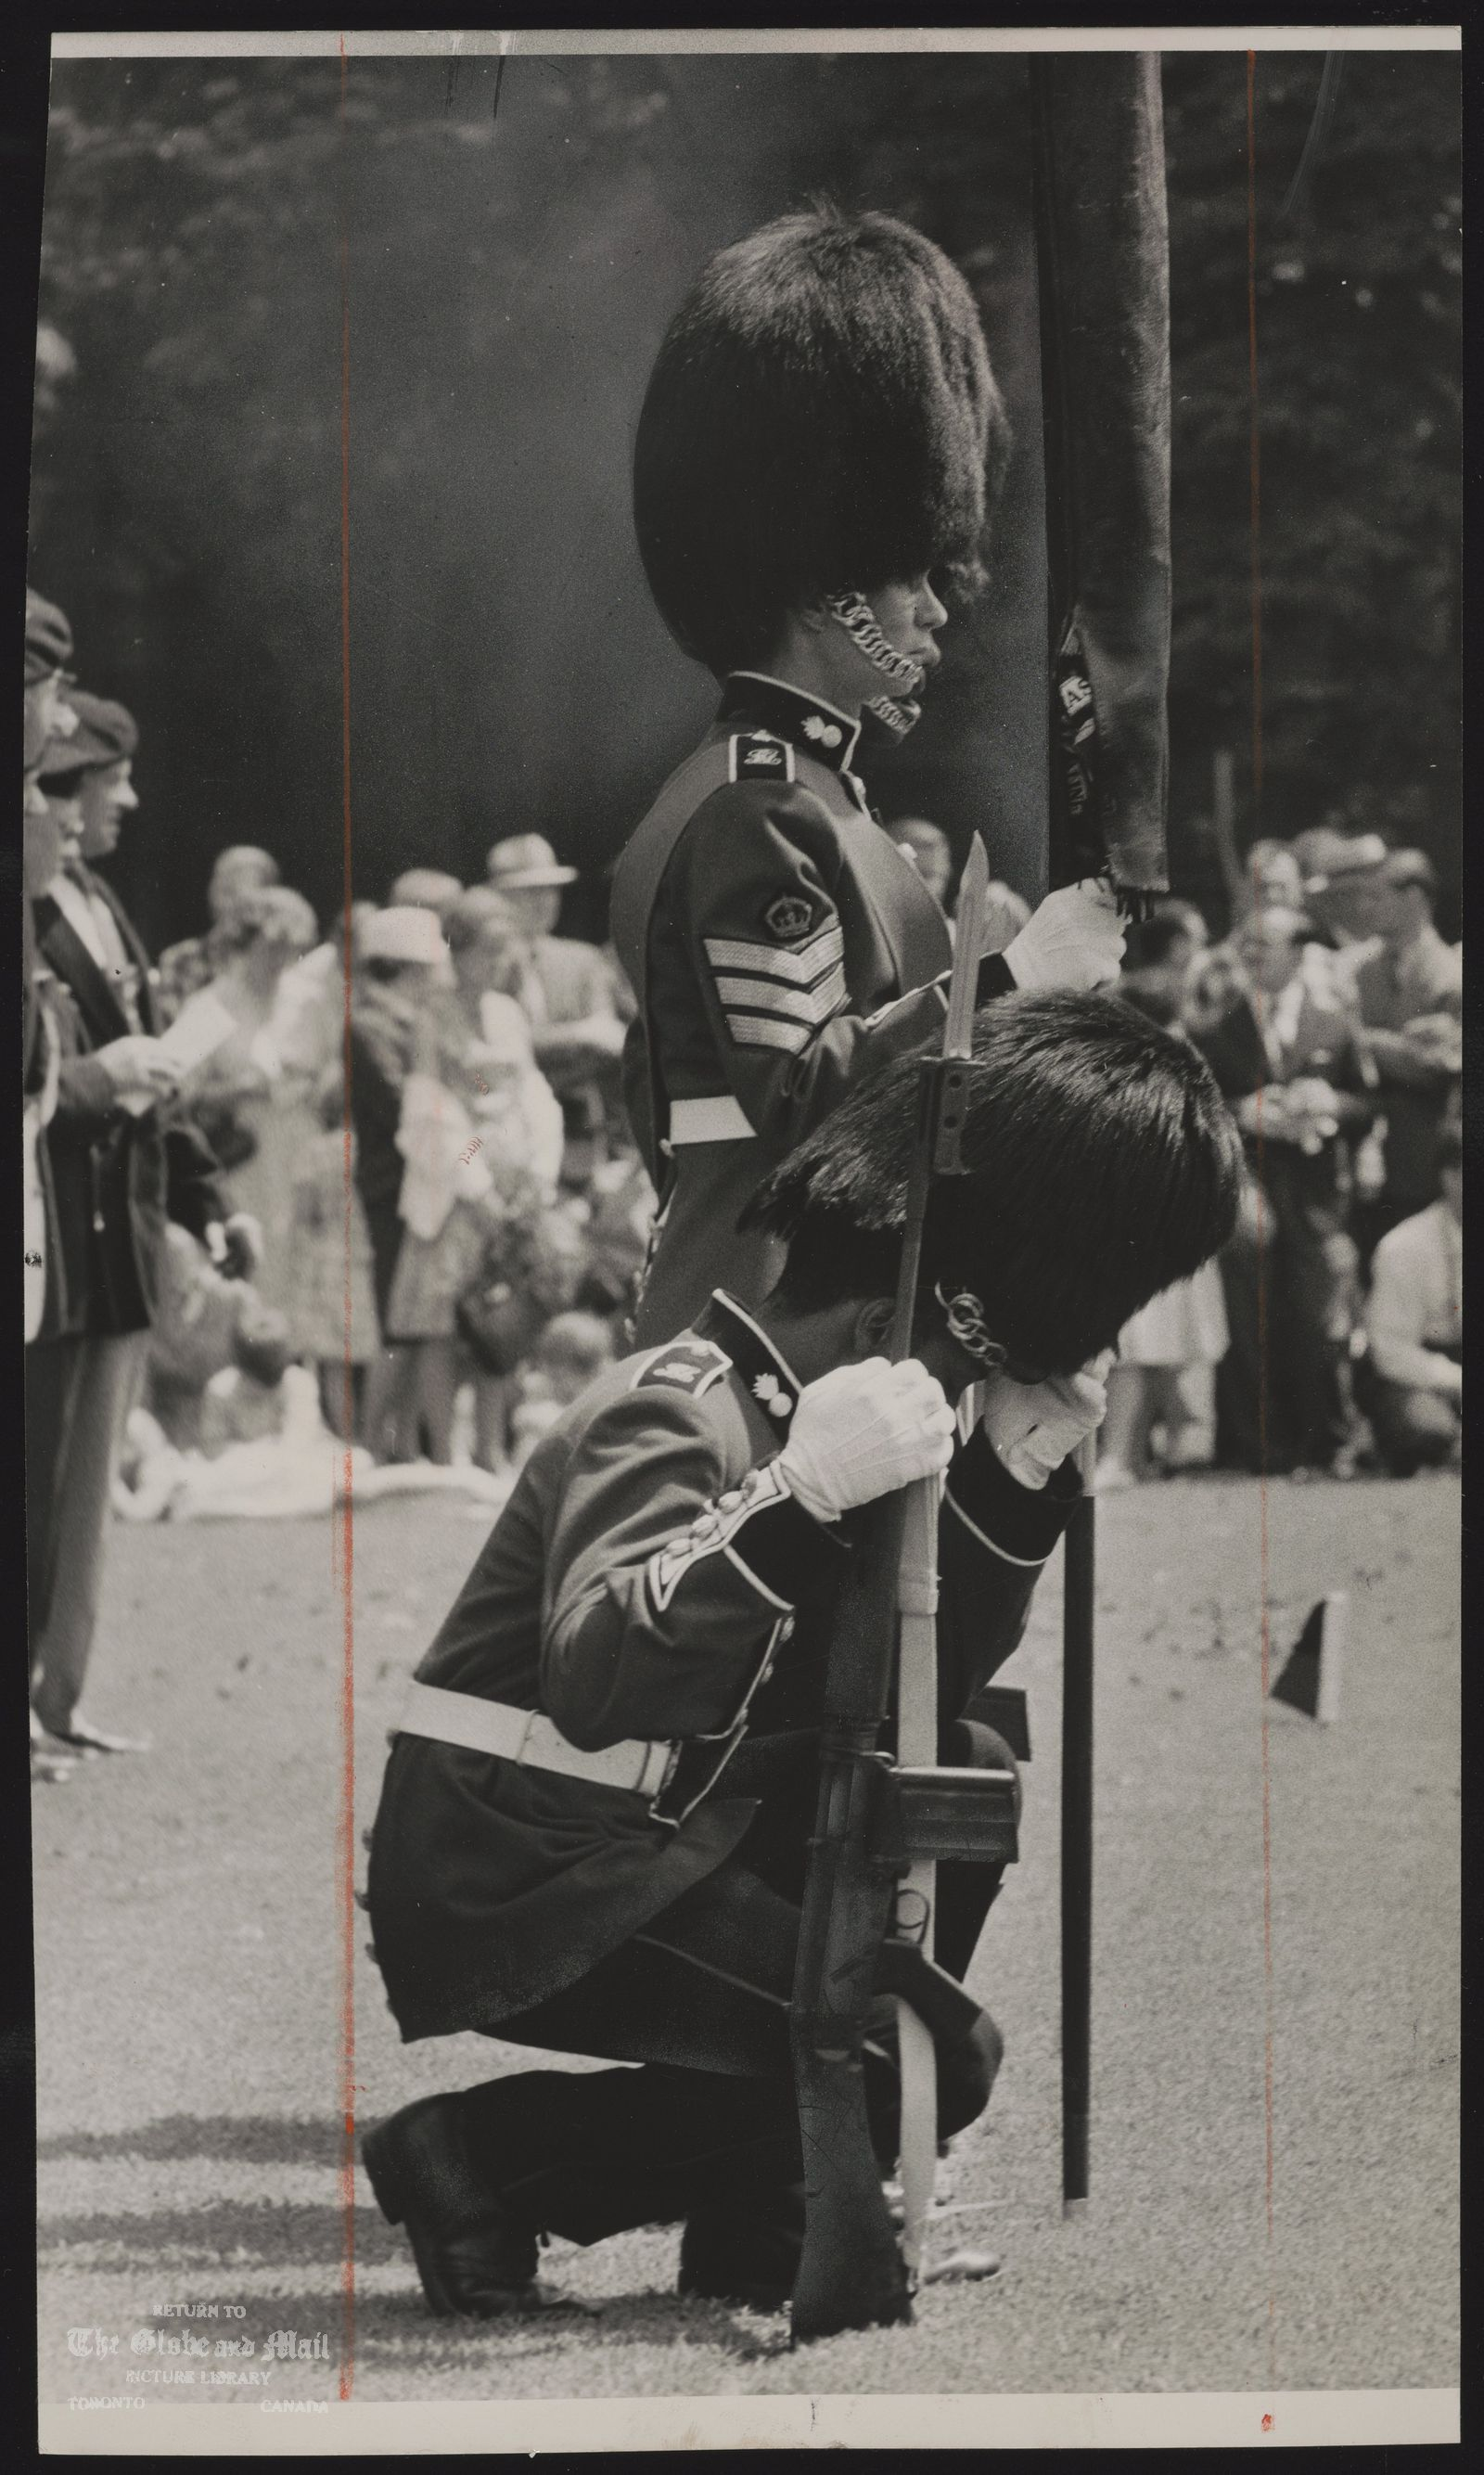 CANADA Dominion Army Royal Regiment of Canada L.F Color sentry in full dress of scarlet tunic and bearskin hat falters in heat during inspection of Regiment by Lt. Gen.G.G. Simons, at University of Toronto campus